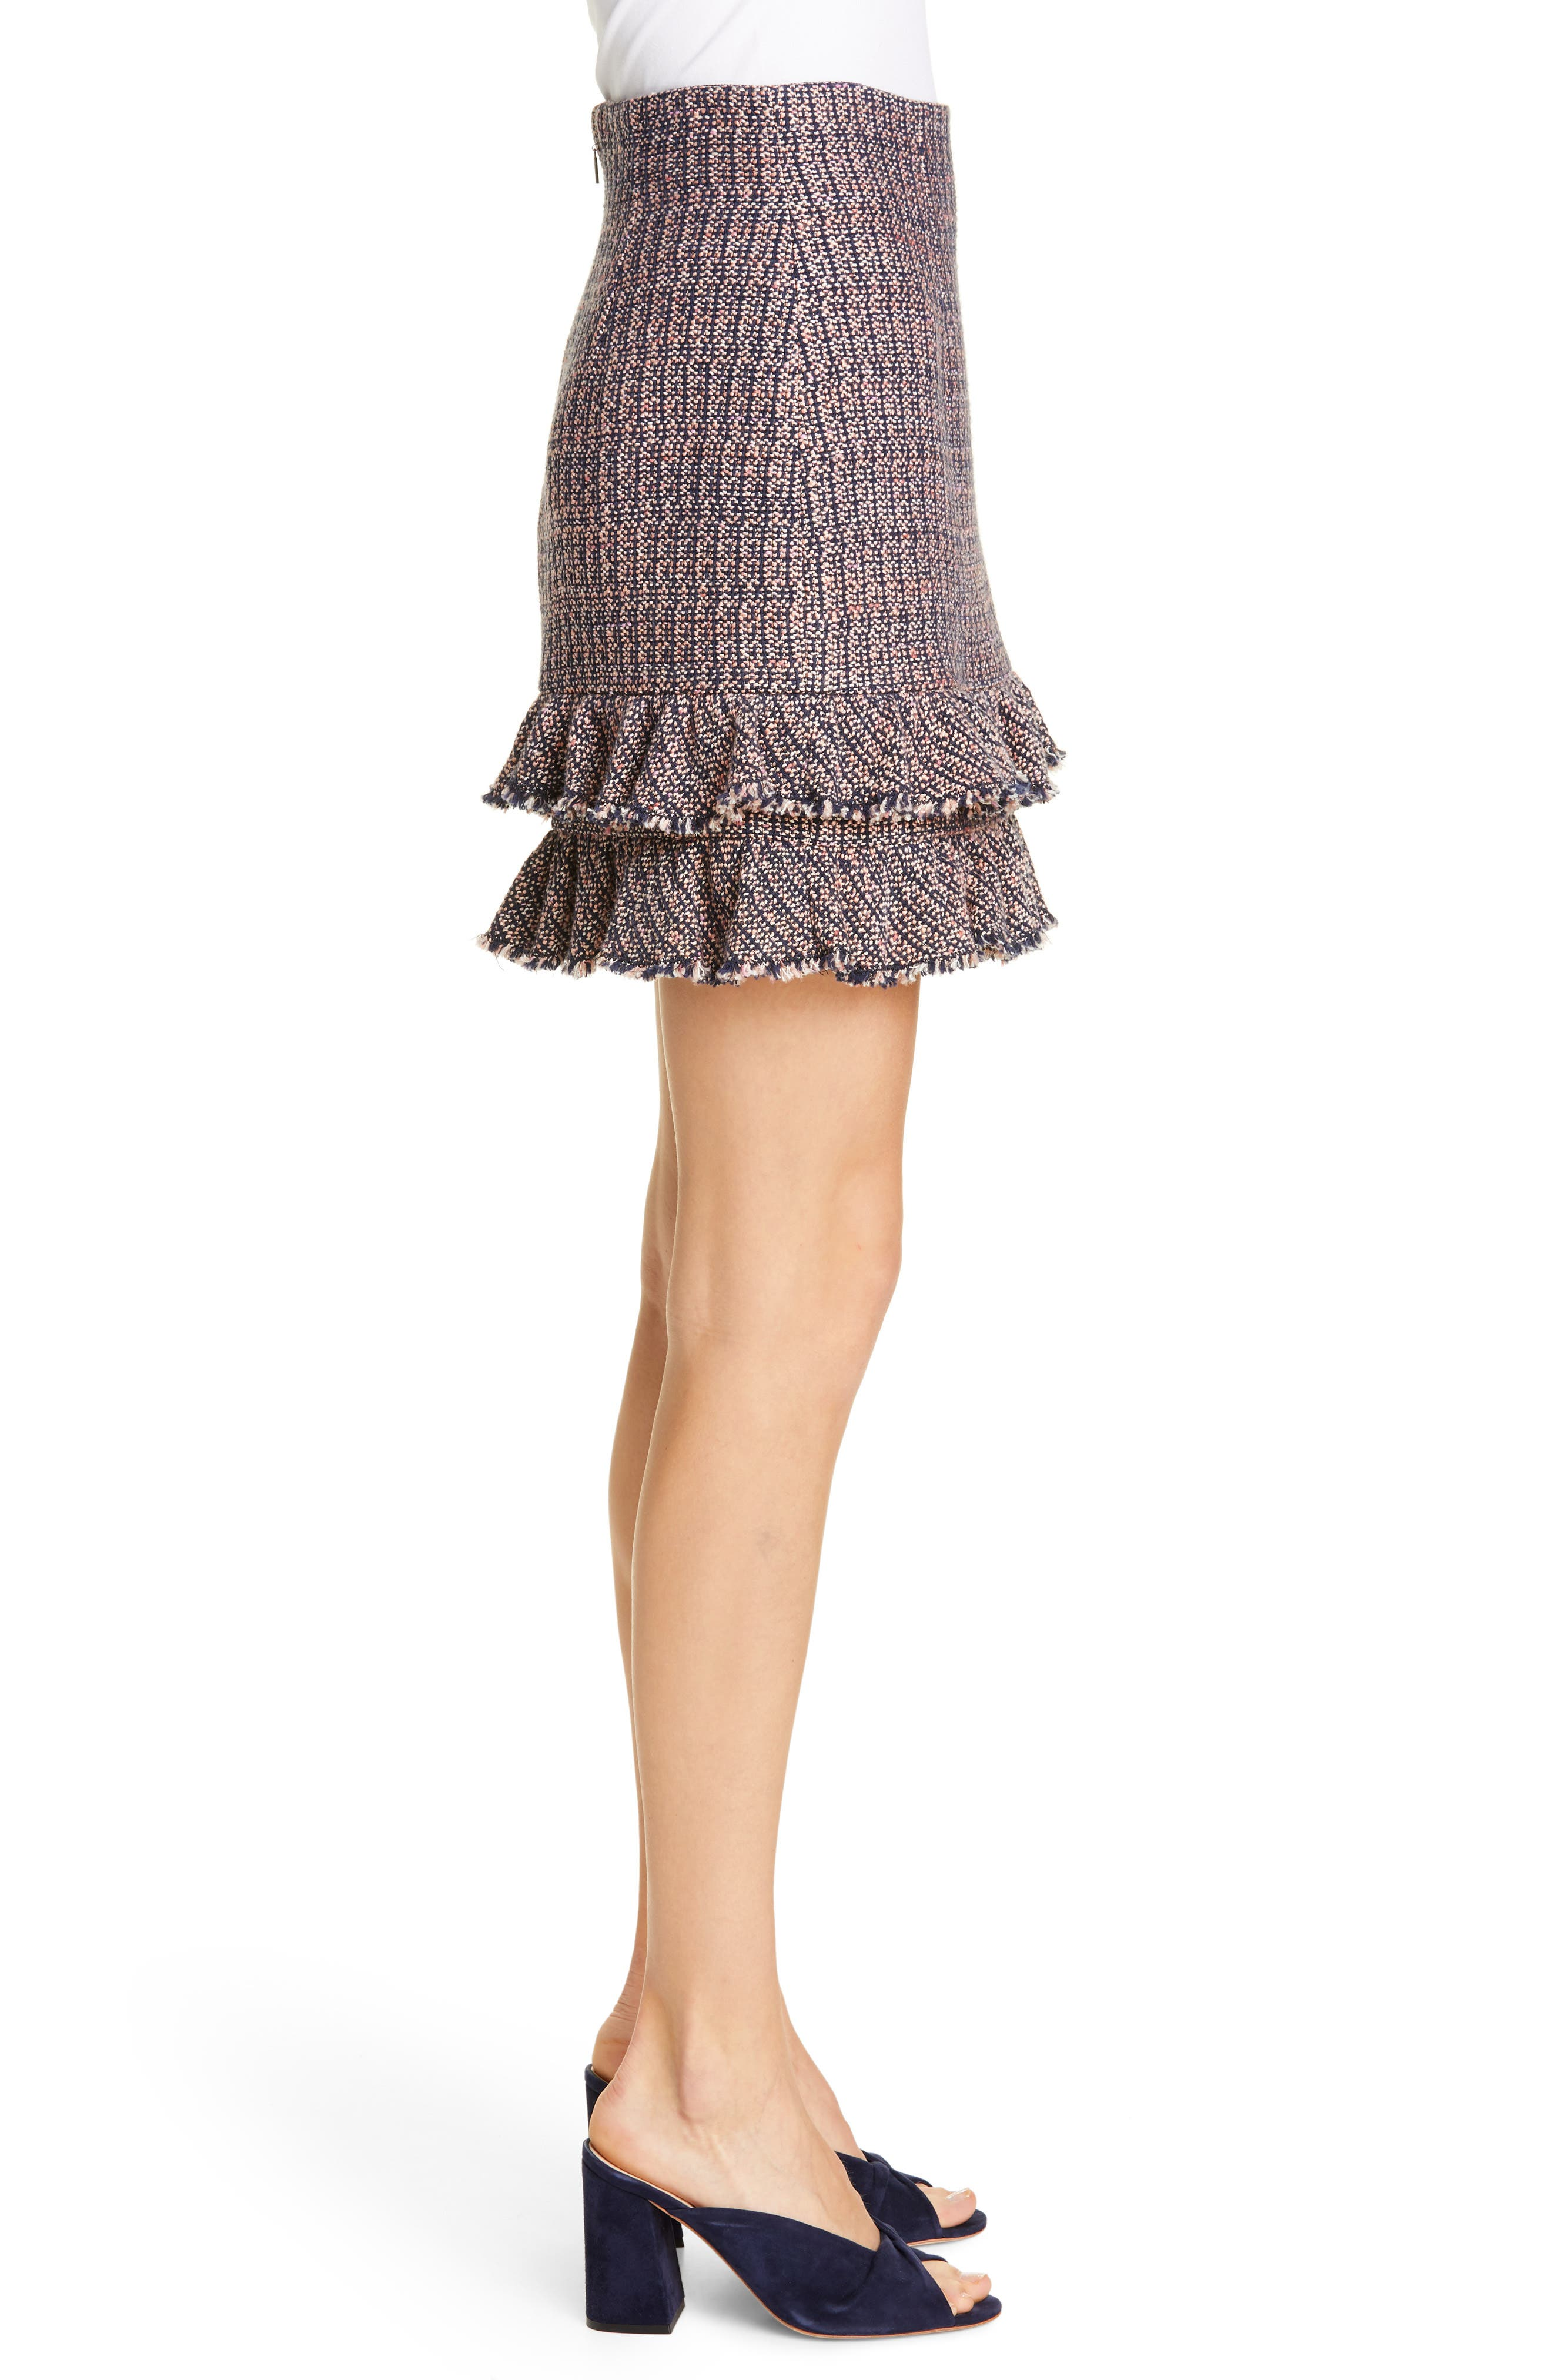 REBECCA TAYLOR, Ruffle Hem Tweed Miniskirt, Alternate thumbnail 3, color, PINK/ NAVY COMBO